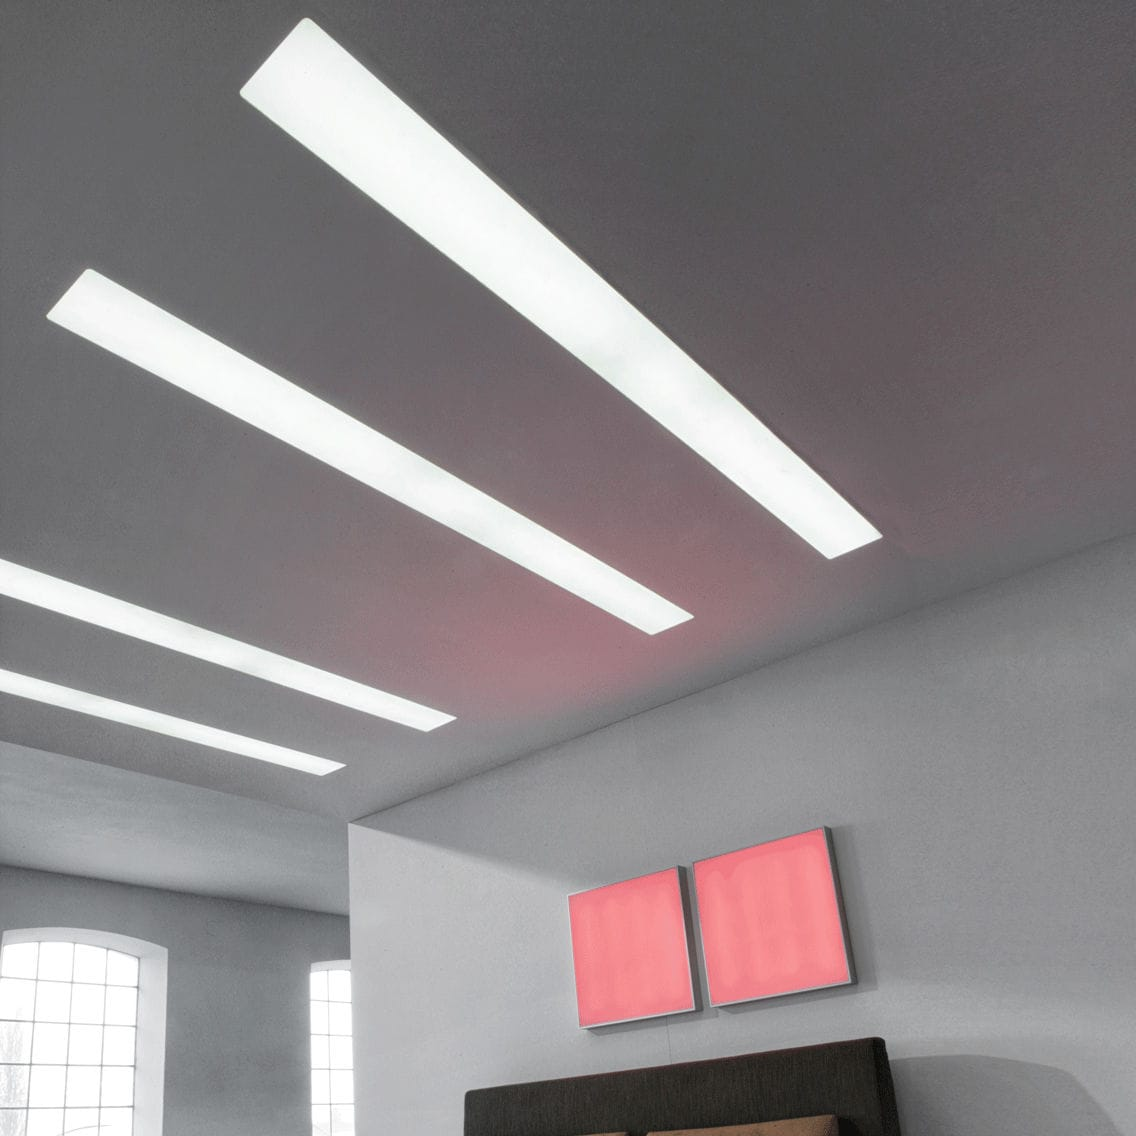 Recessed ceiling light fixture / recessed wall / LED / fluorescent ...